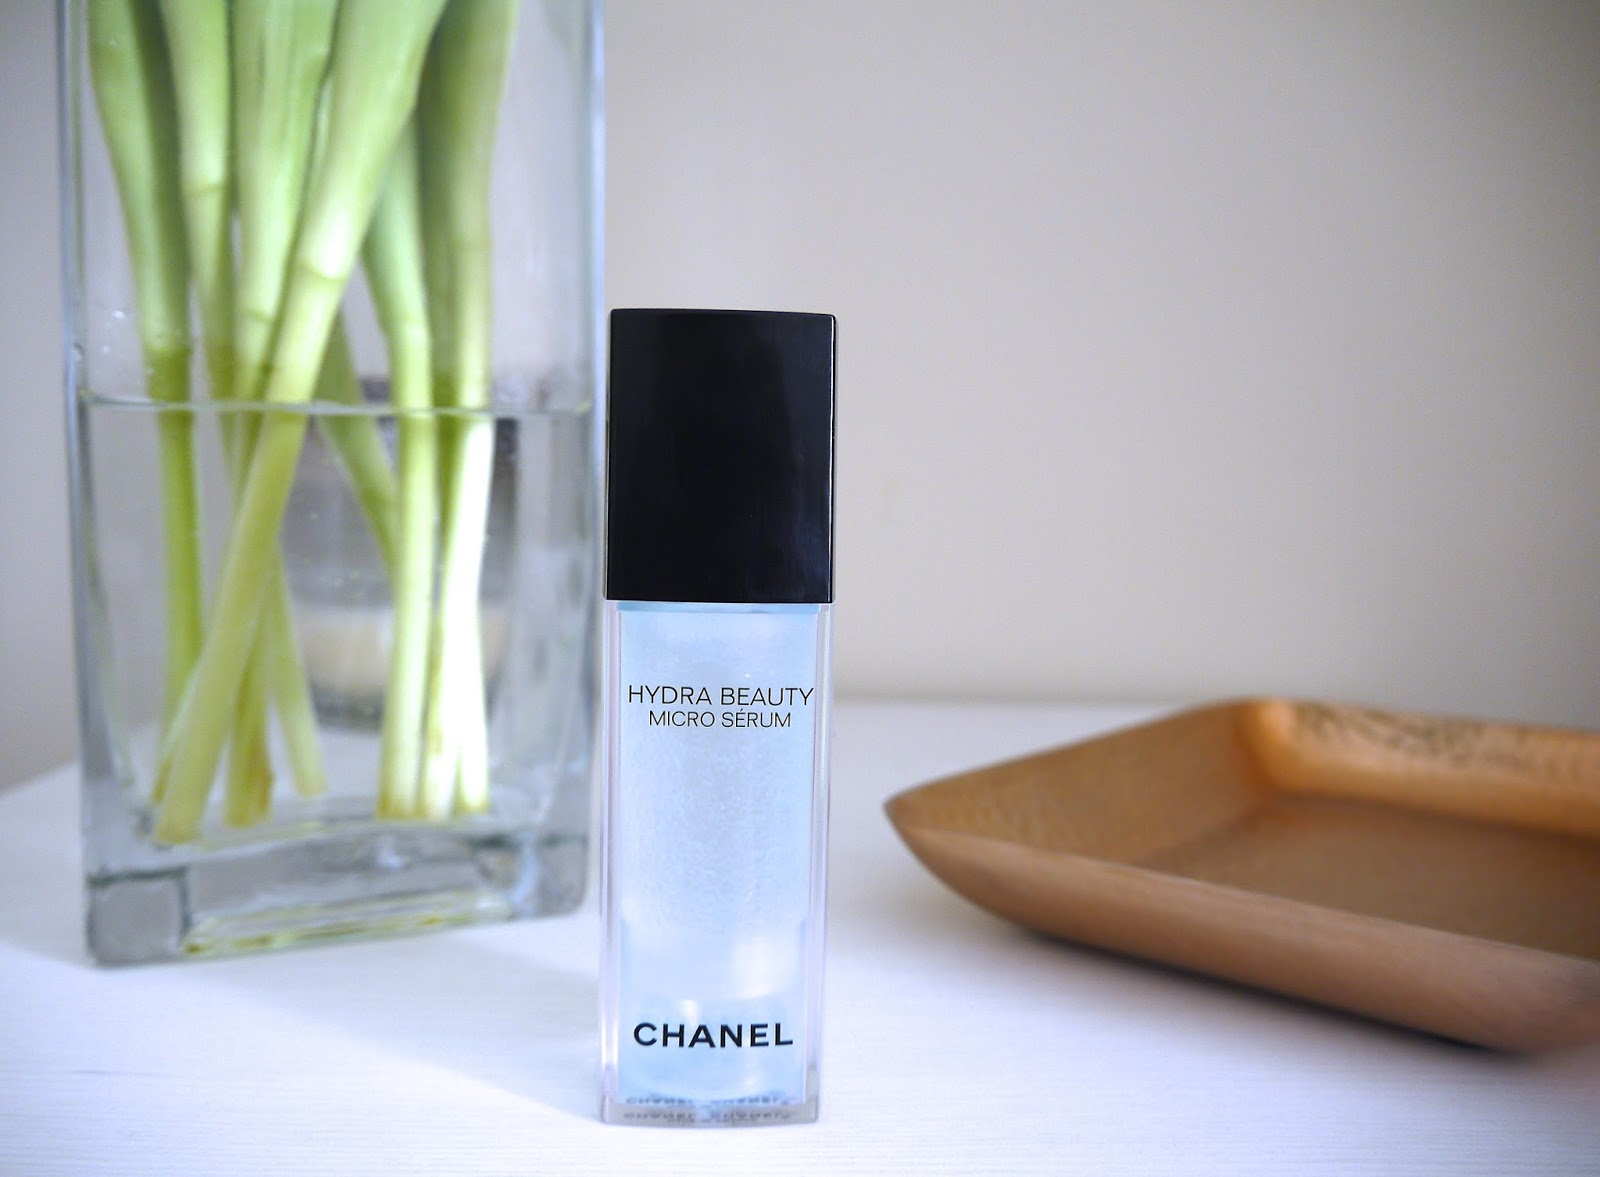 chanel serum review chanel hydra beauty serum review best serums to use